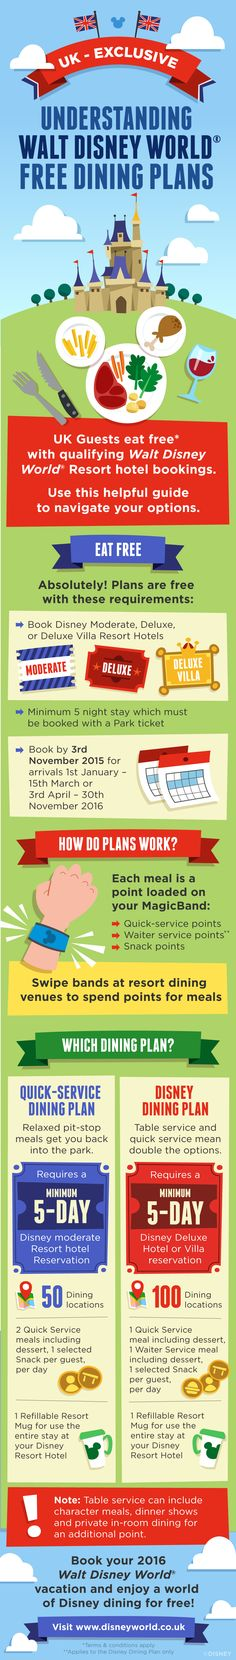 UK guests can enjoy free dining at Walt Disney World when you book your holiday through November 3rd! Learn more about how the plan works.